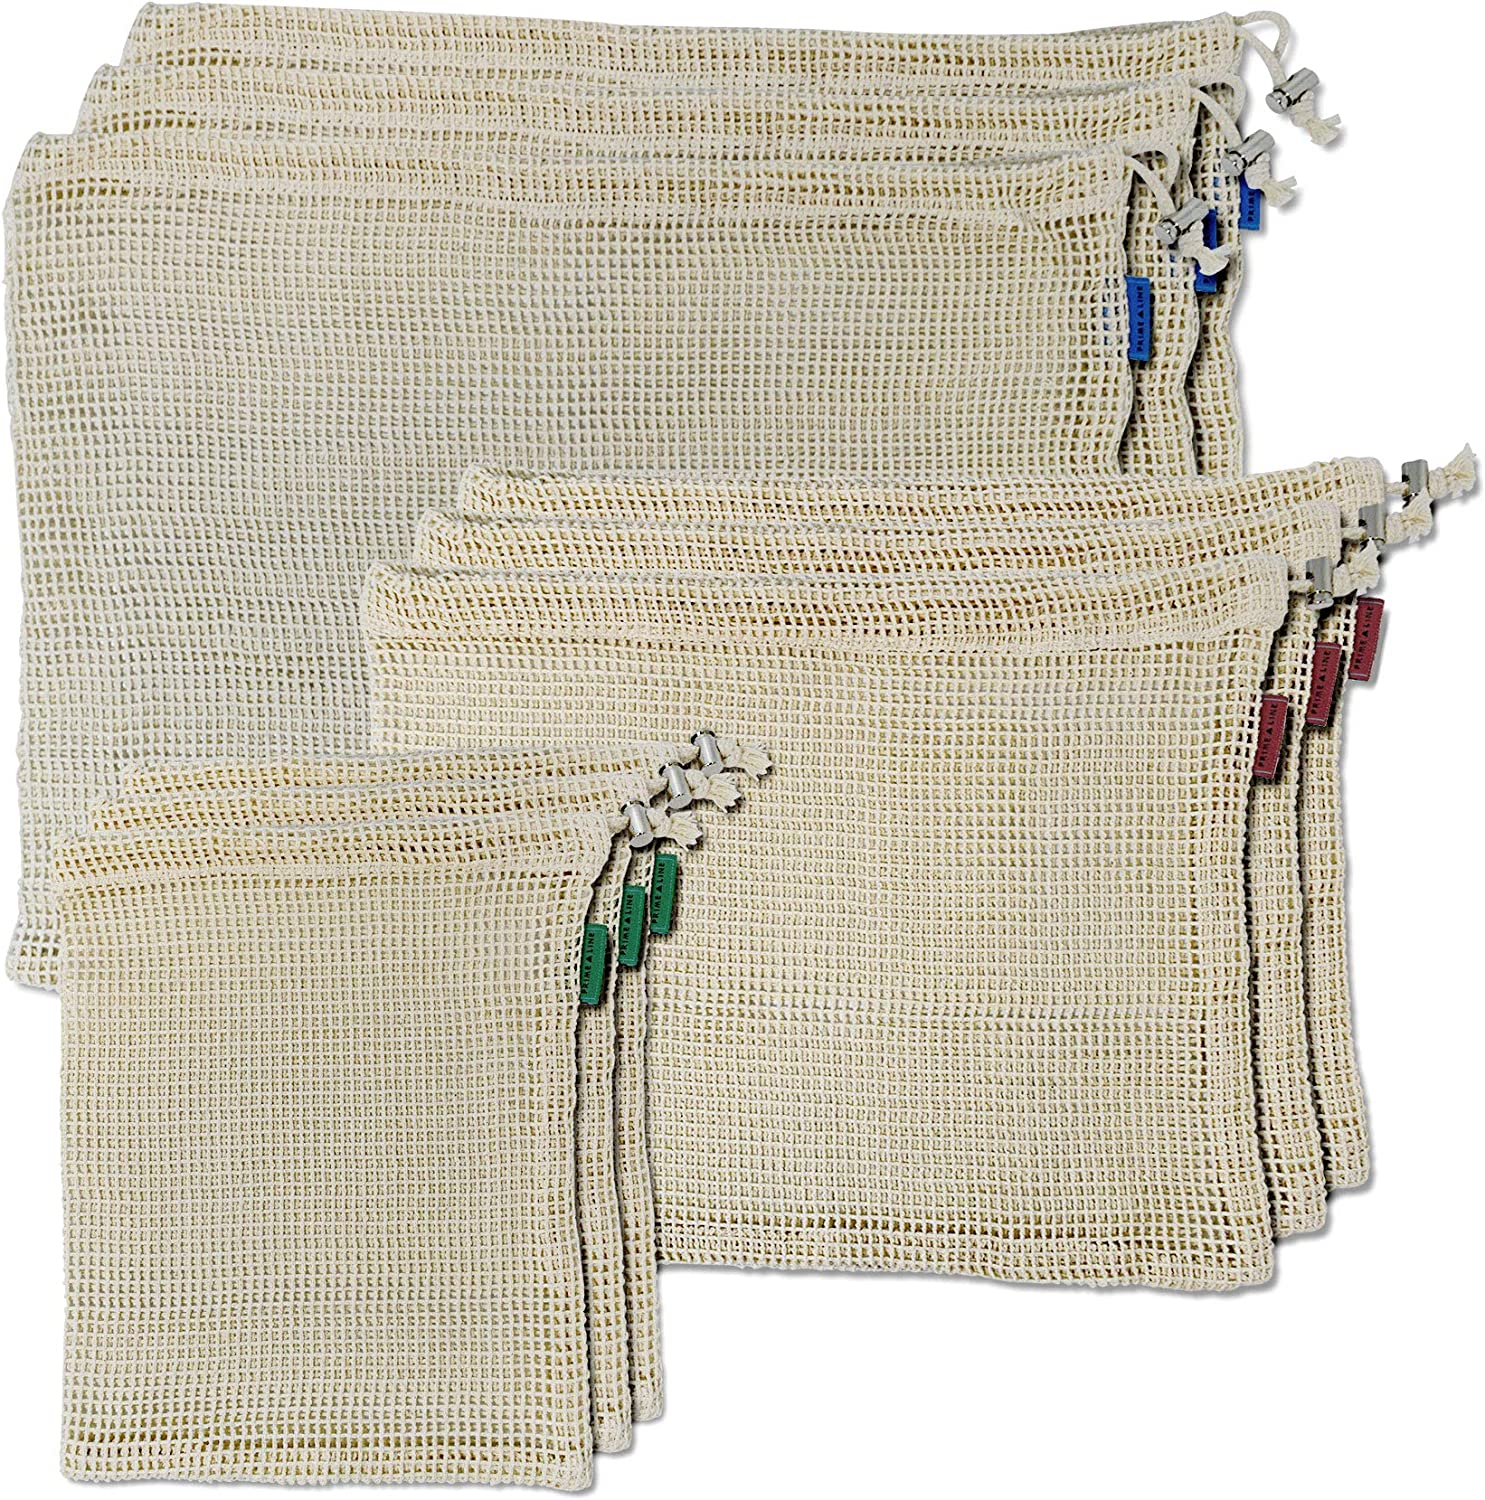 Cotton Net Produce Bags With Tare Weights, Grocery Bags Certified Organic GOTS Cotton, Cotton Mesh Bags With Color Coded Labels In Assorted Sizes, Zero Waste Bags – 9 Pcs.